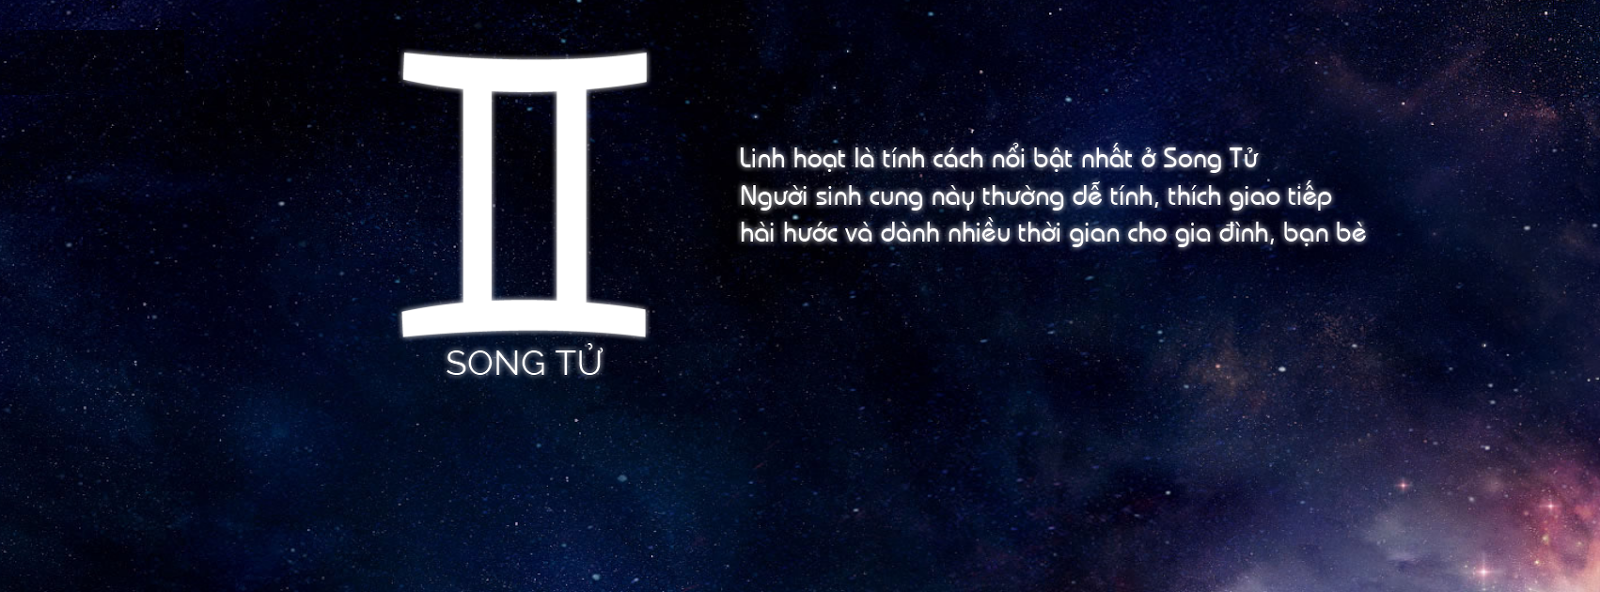 ảnh bìa facebook cover song tử